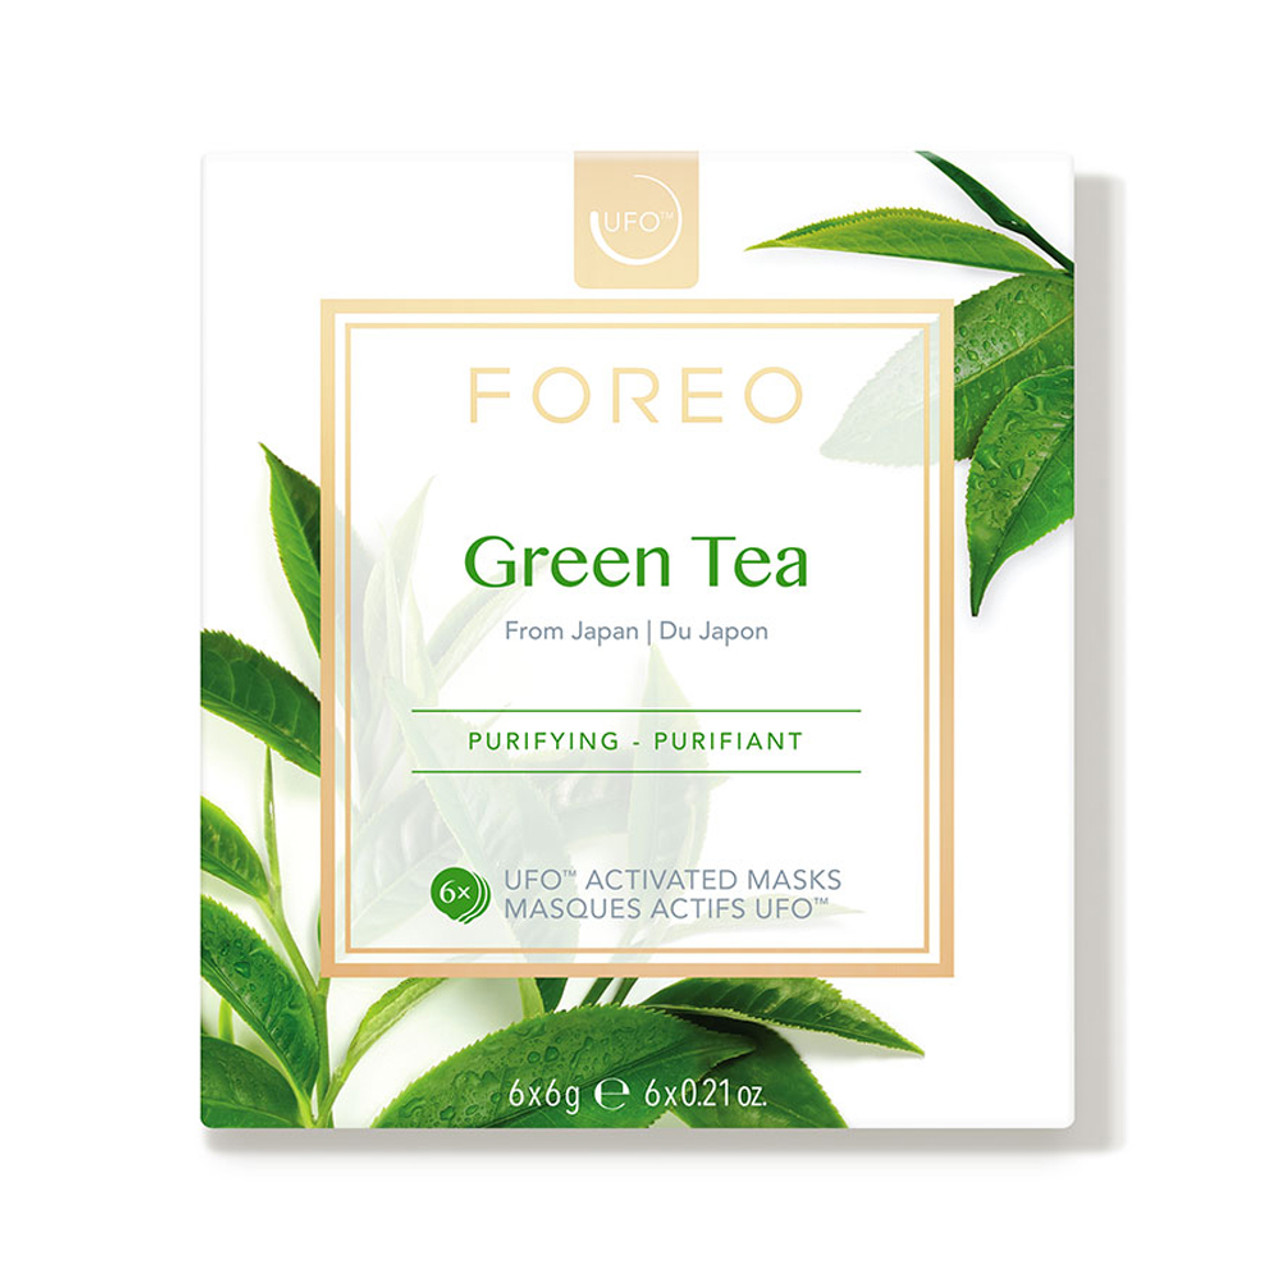 Foreo UFO Activated Masks - Green Tea (6-Pk)